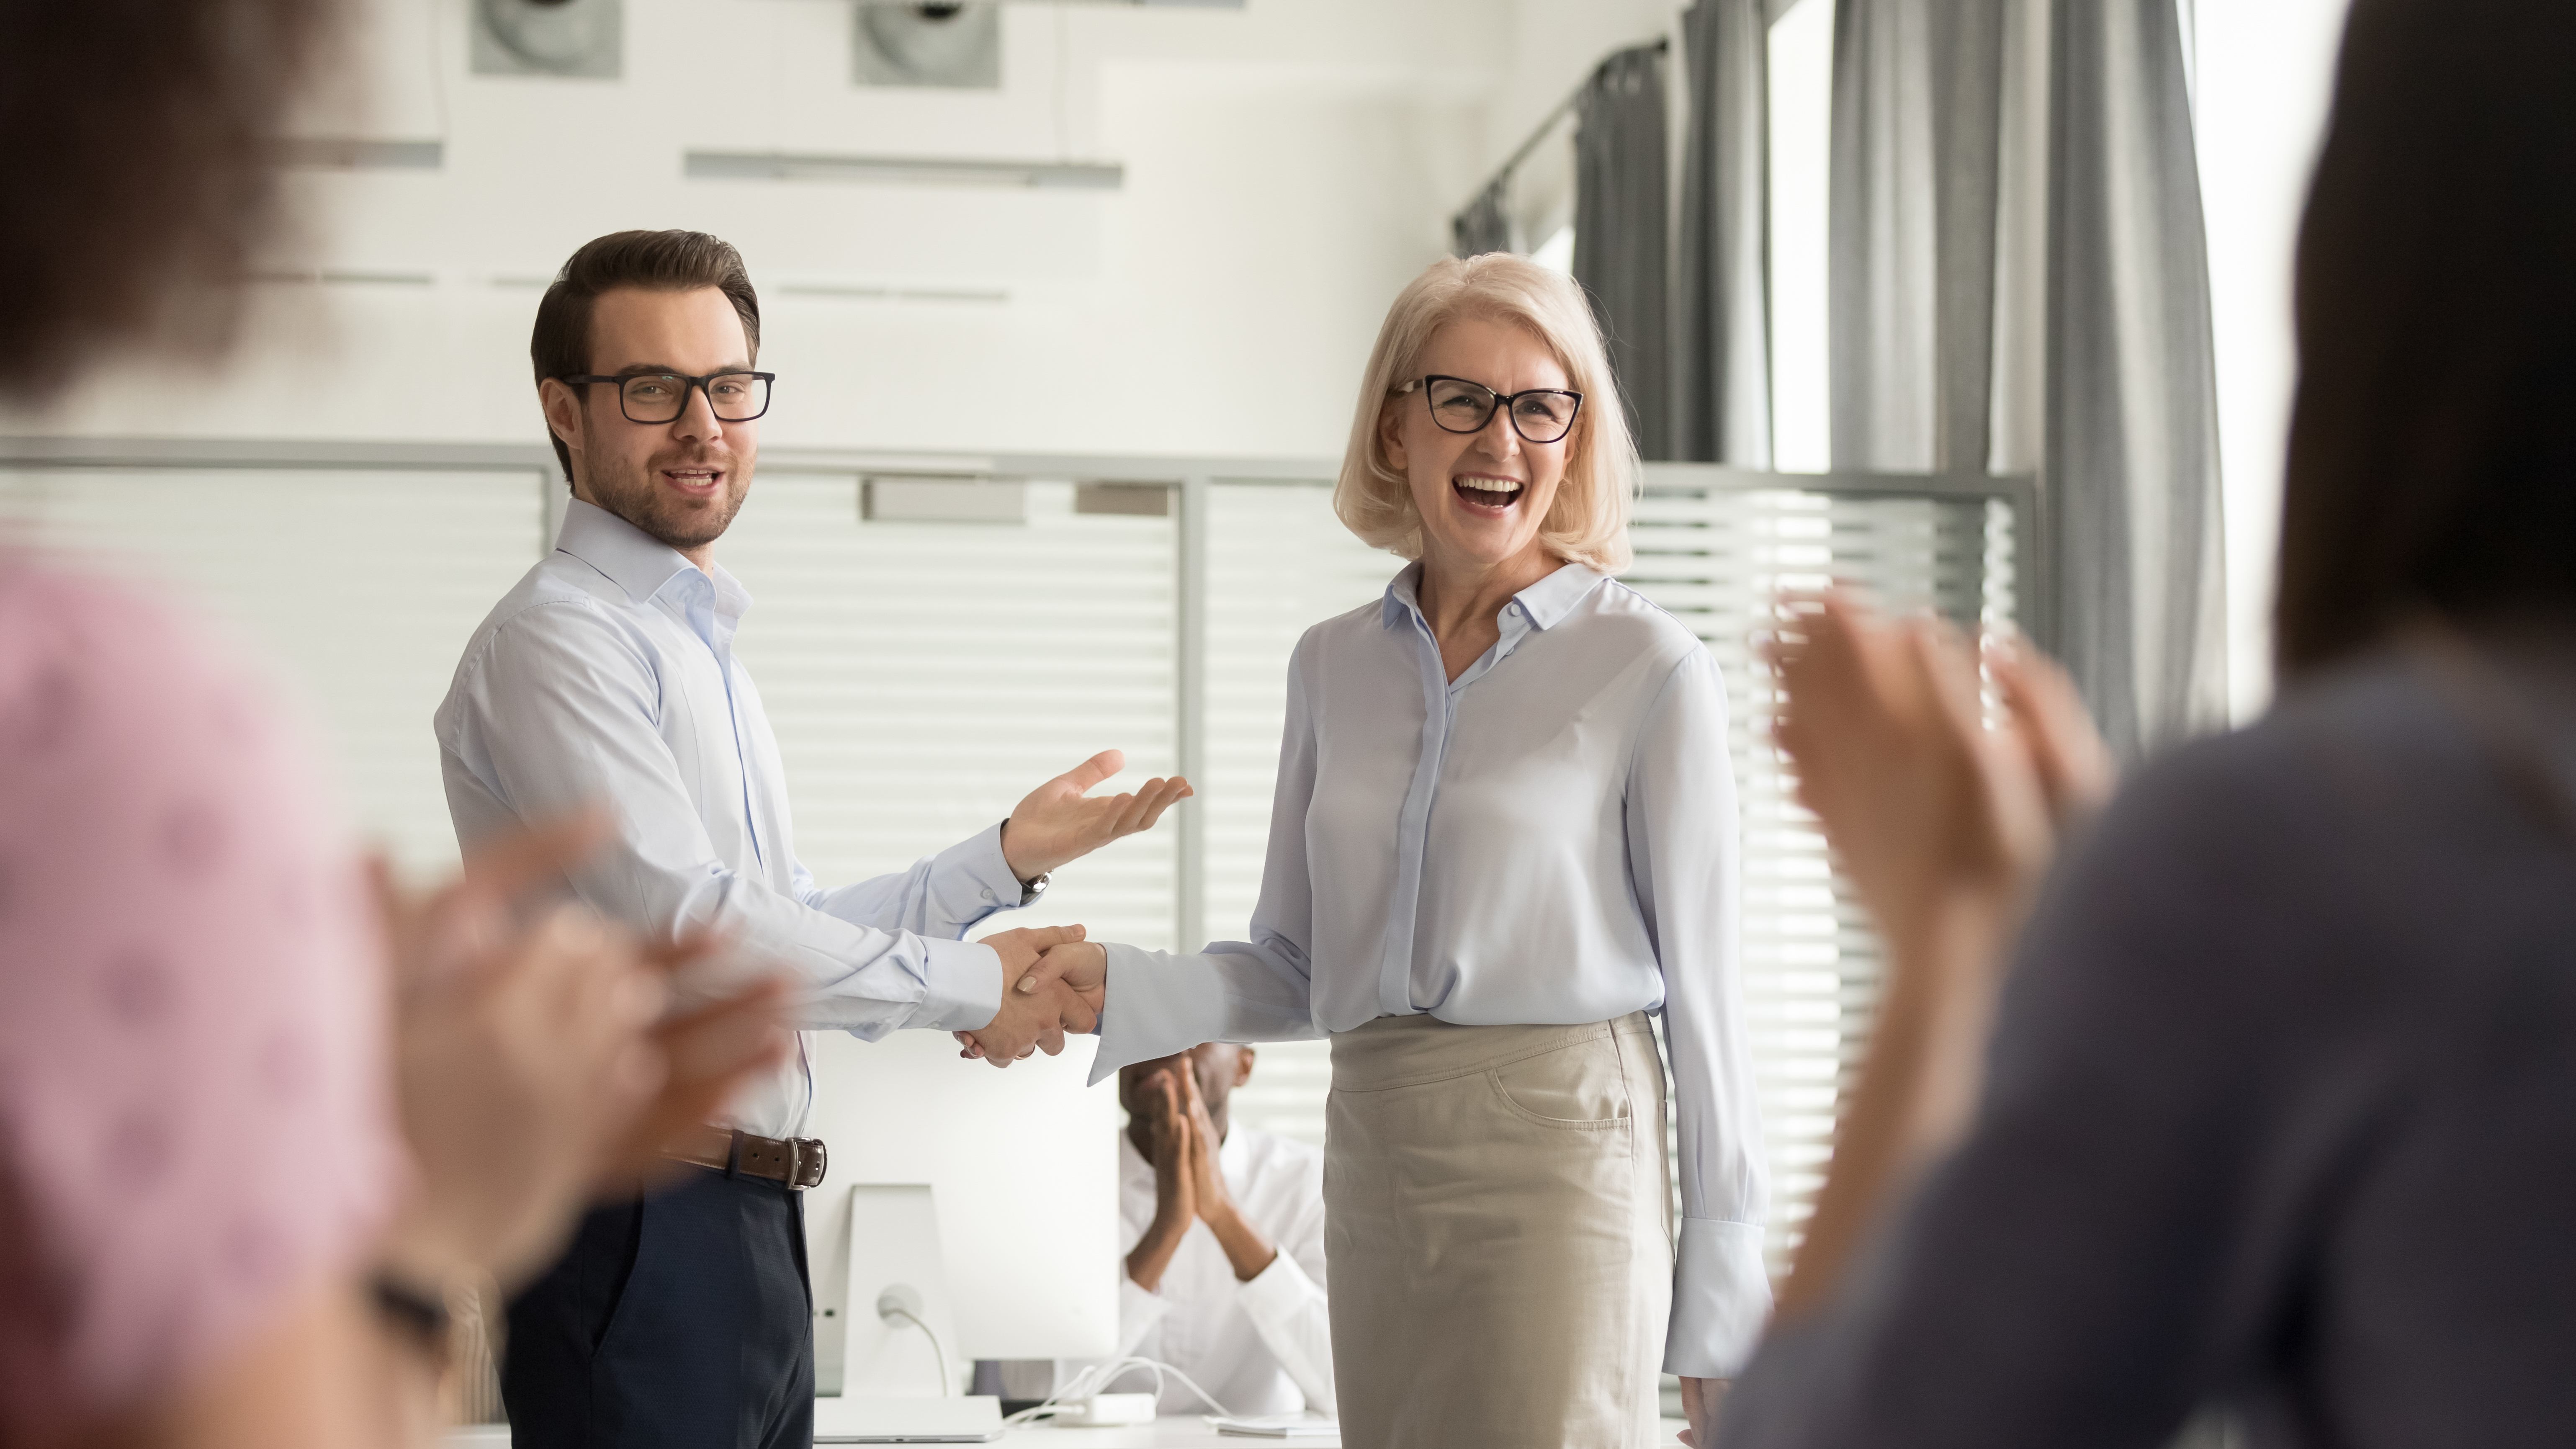 Businessman shakes hand of female coworker while employees clap